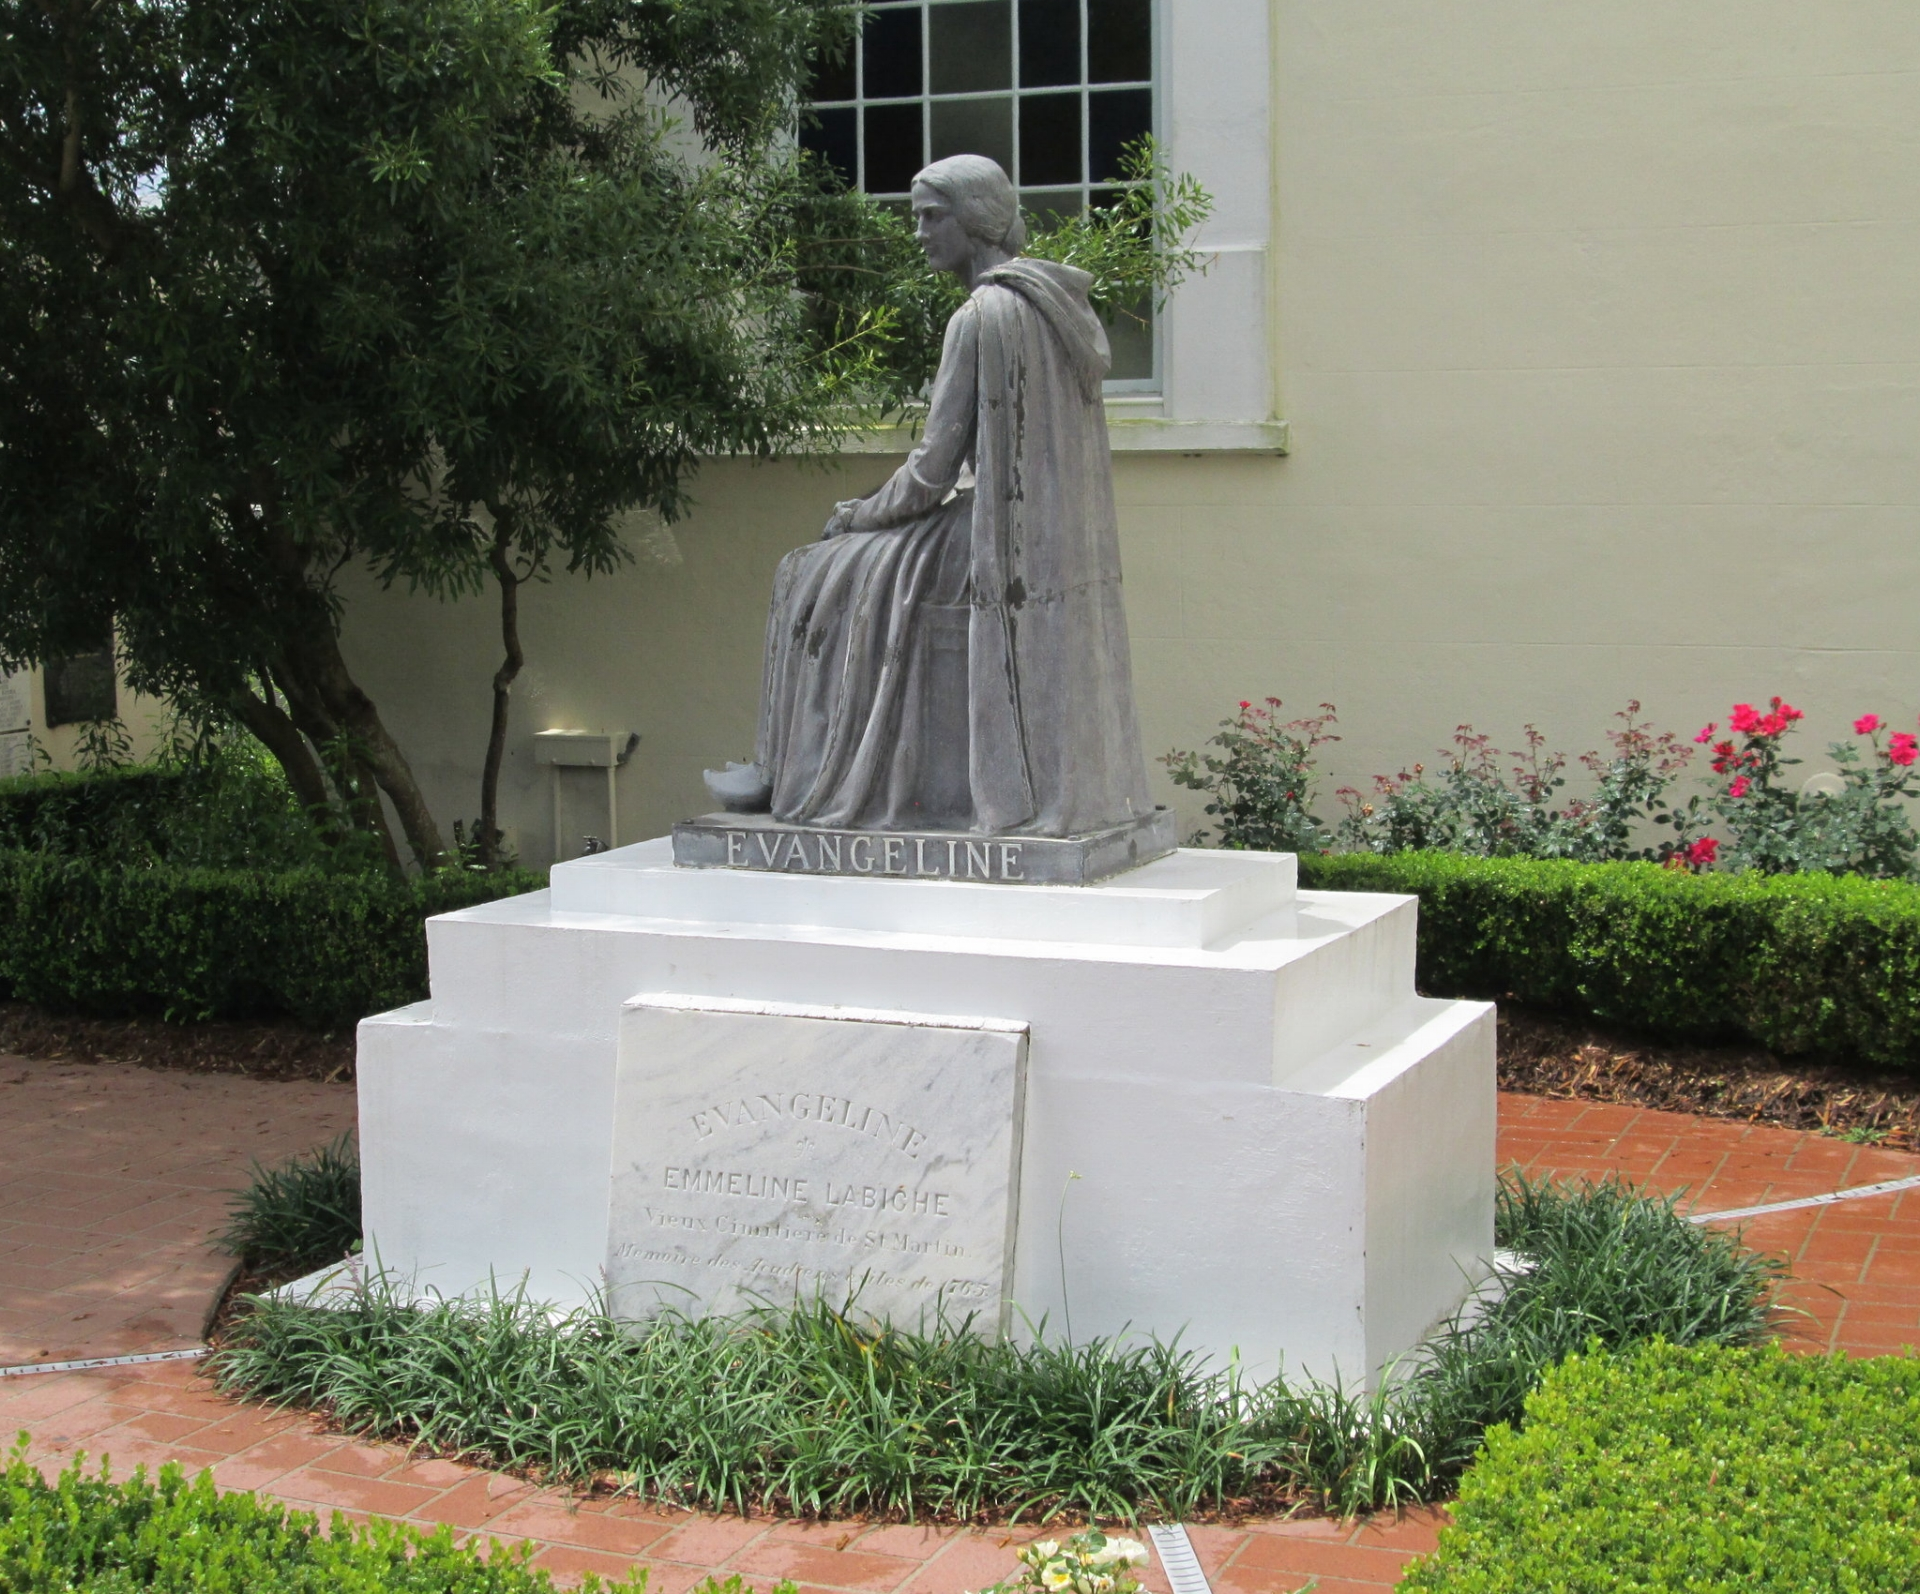 A statue of Evangeline